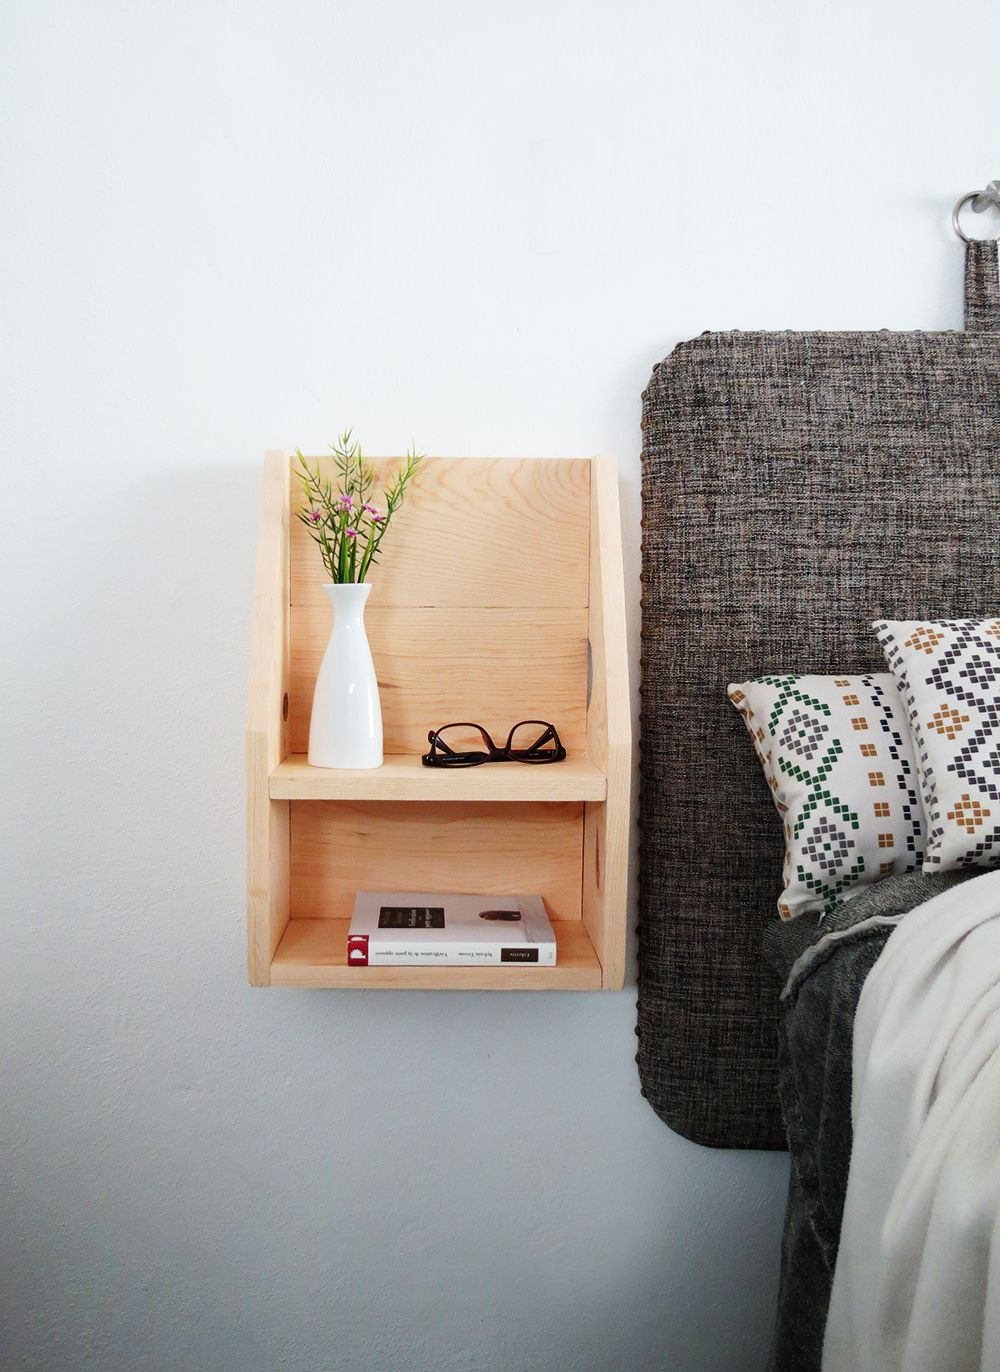 How To Build A Floating Nightstand Floating Nightstand Diy Diy